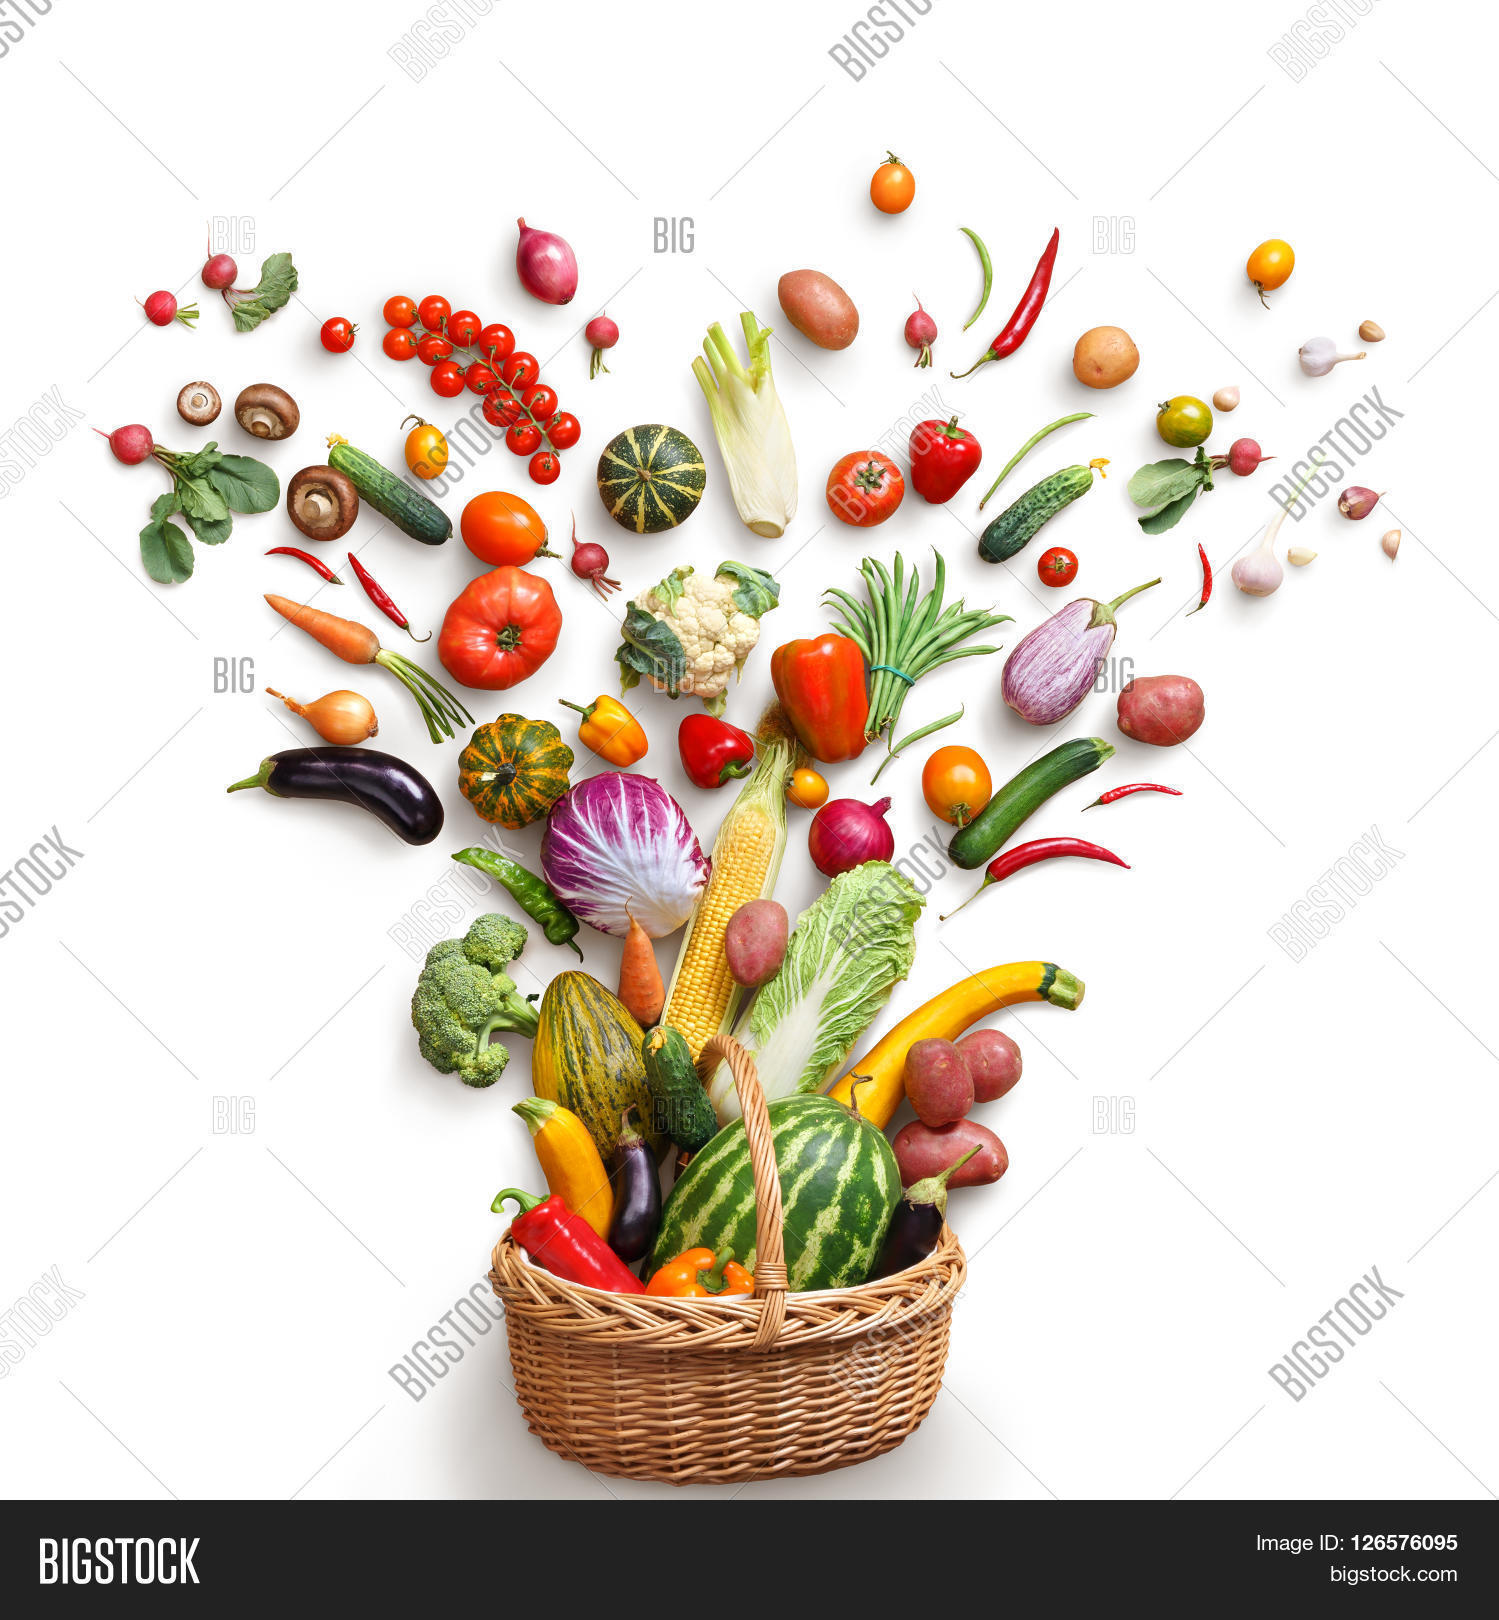 Food background studio photo of different fruits and vegetables - Healthy Food In Basket Studio Photography Of Different Fruits And Vegetables Isoleted On White Backdrop